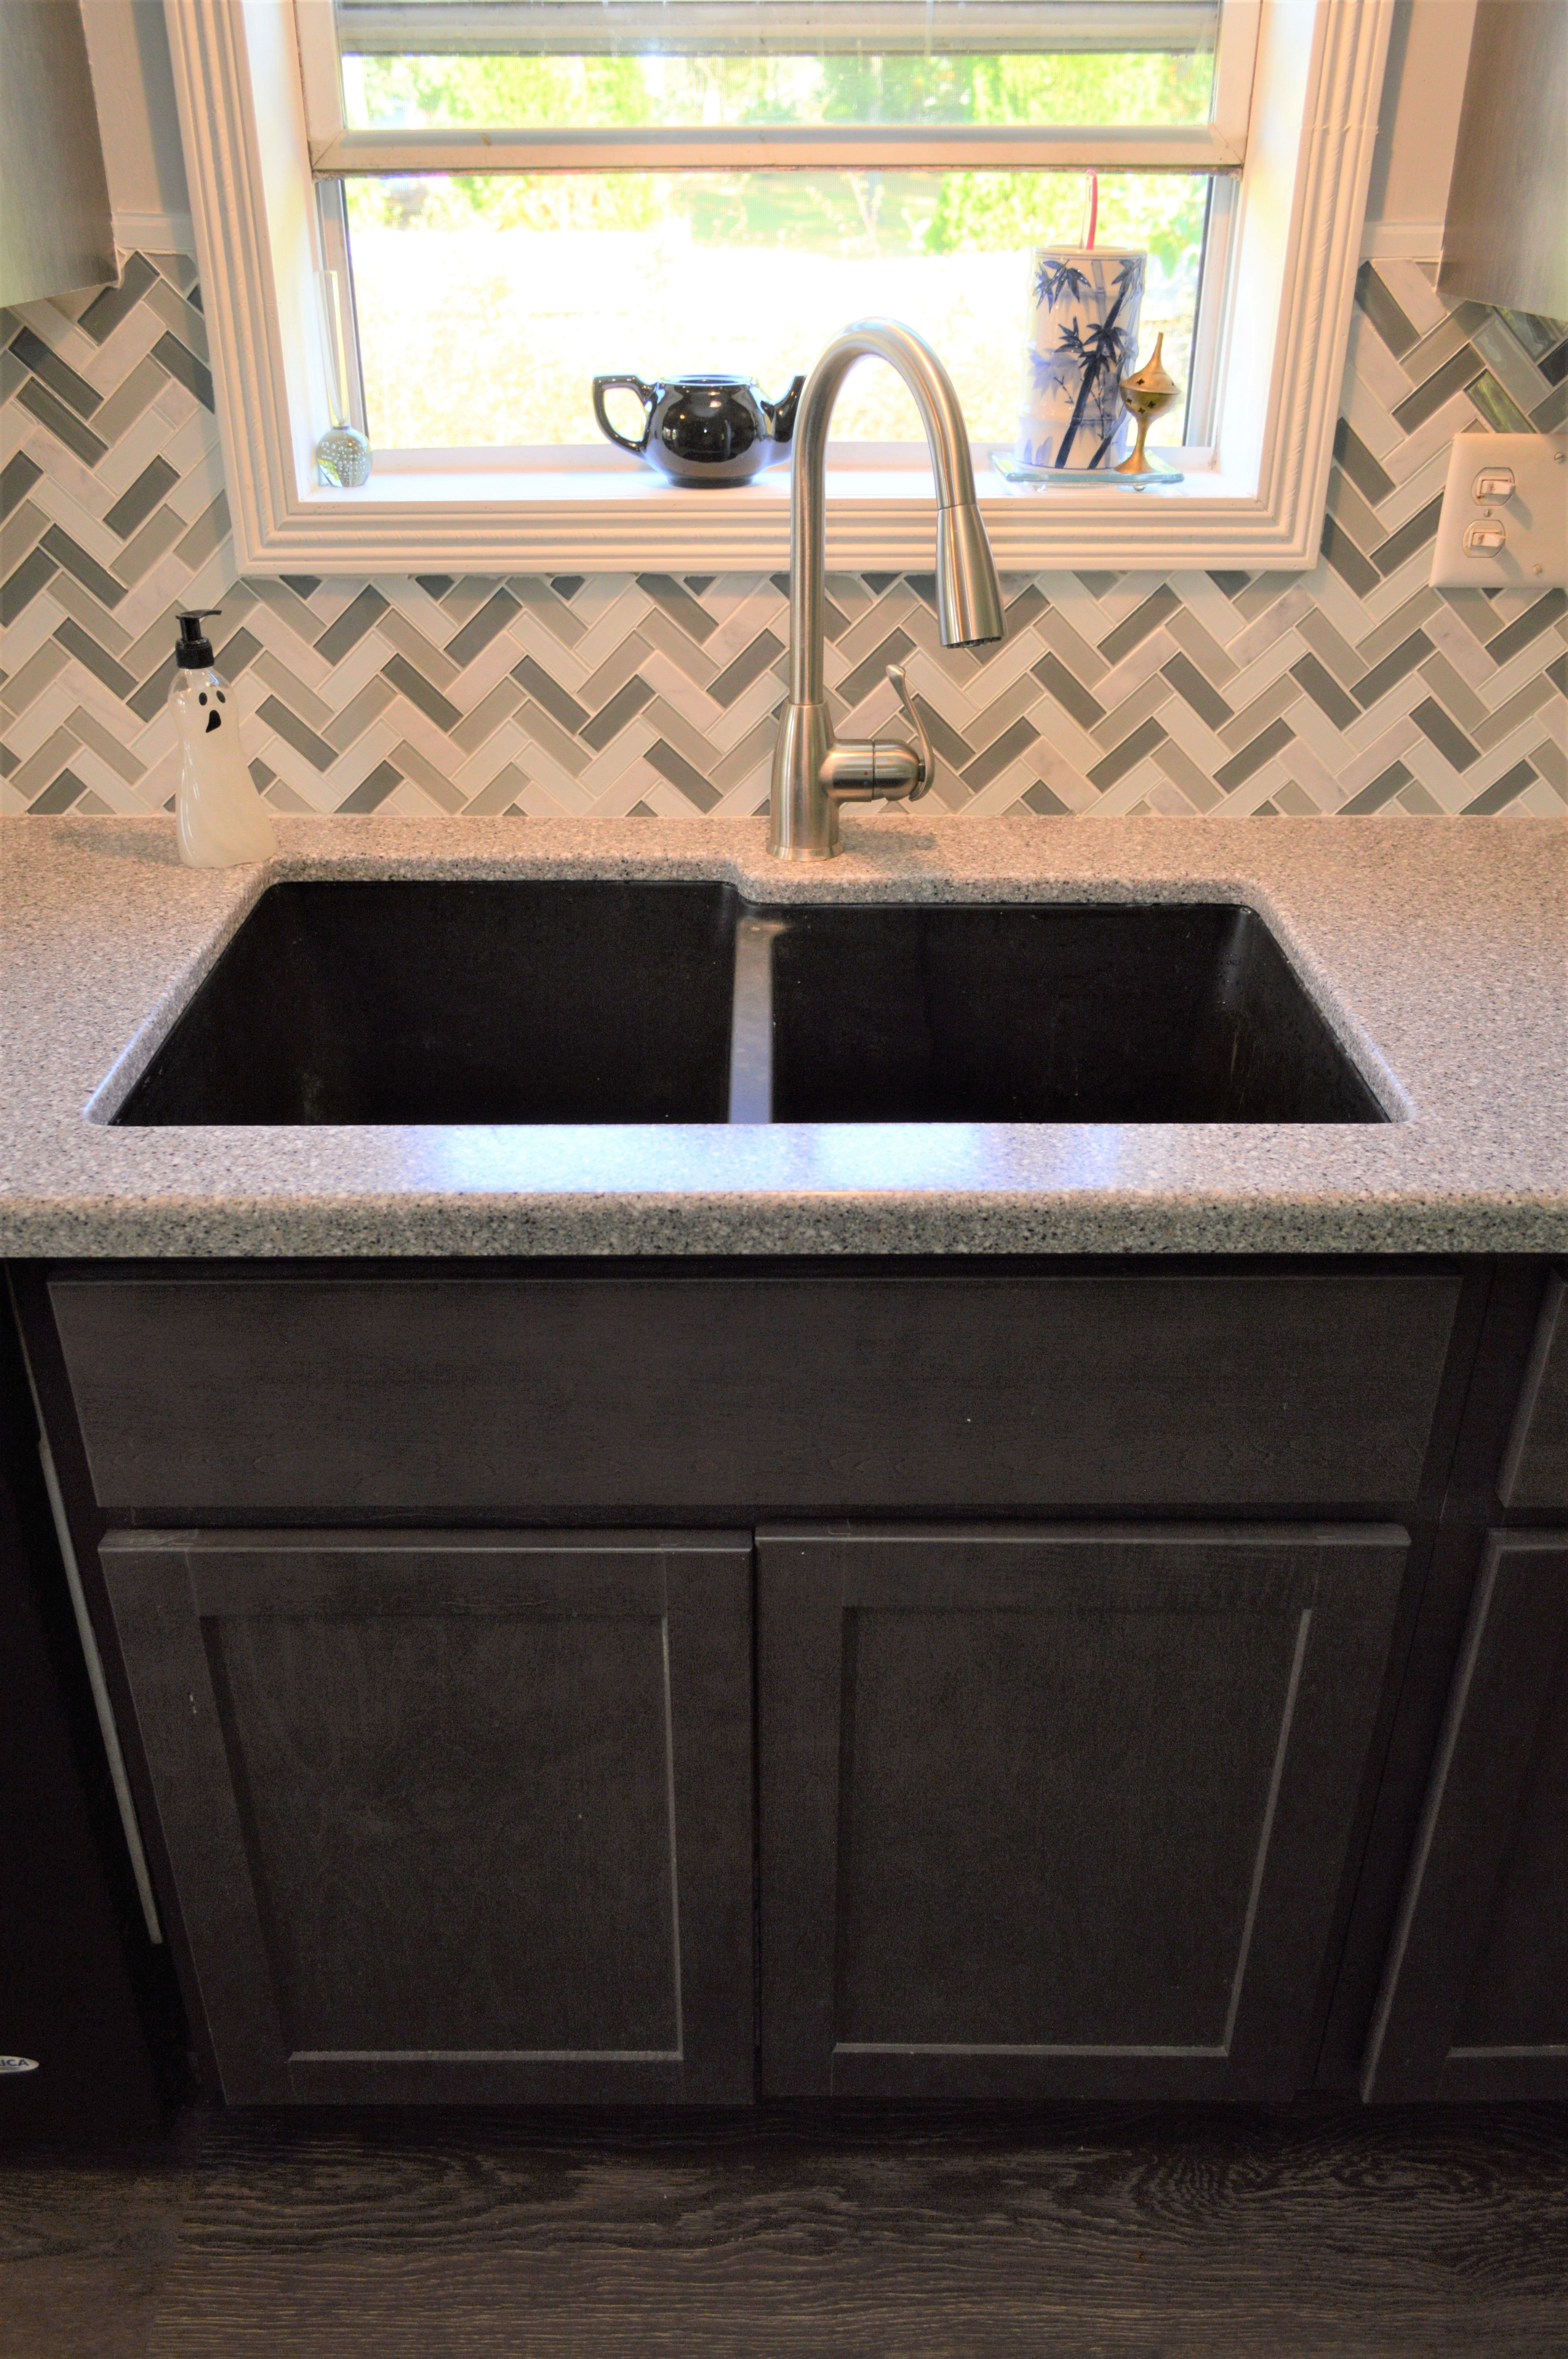 Bailey S Cabinets Pelican 60 40 Offset Quartz Undermount Sink